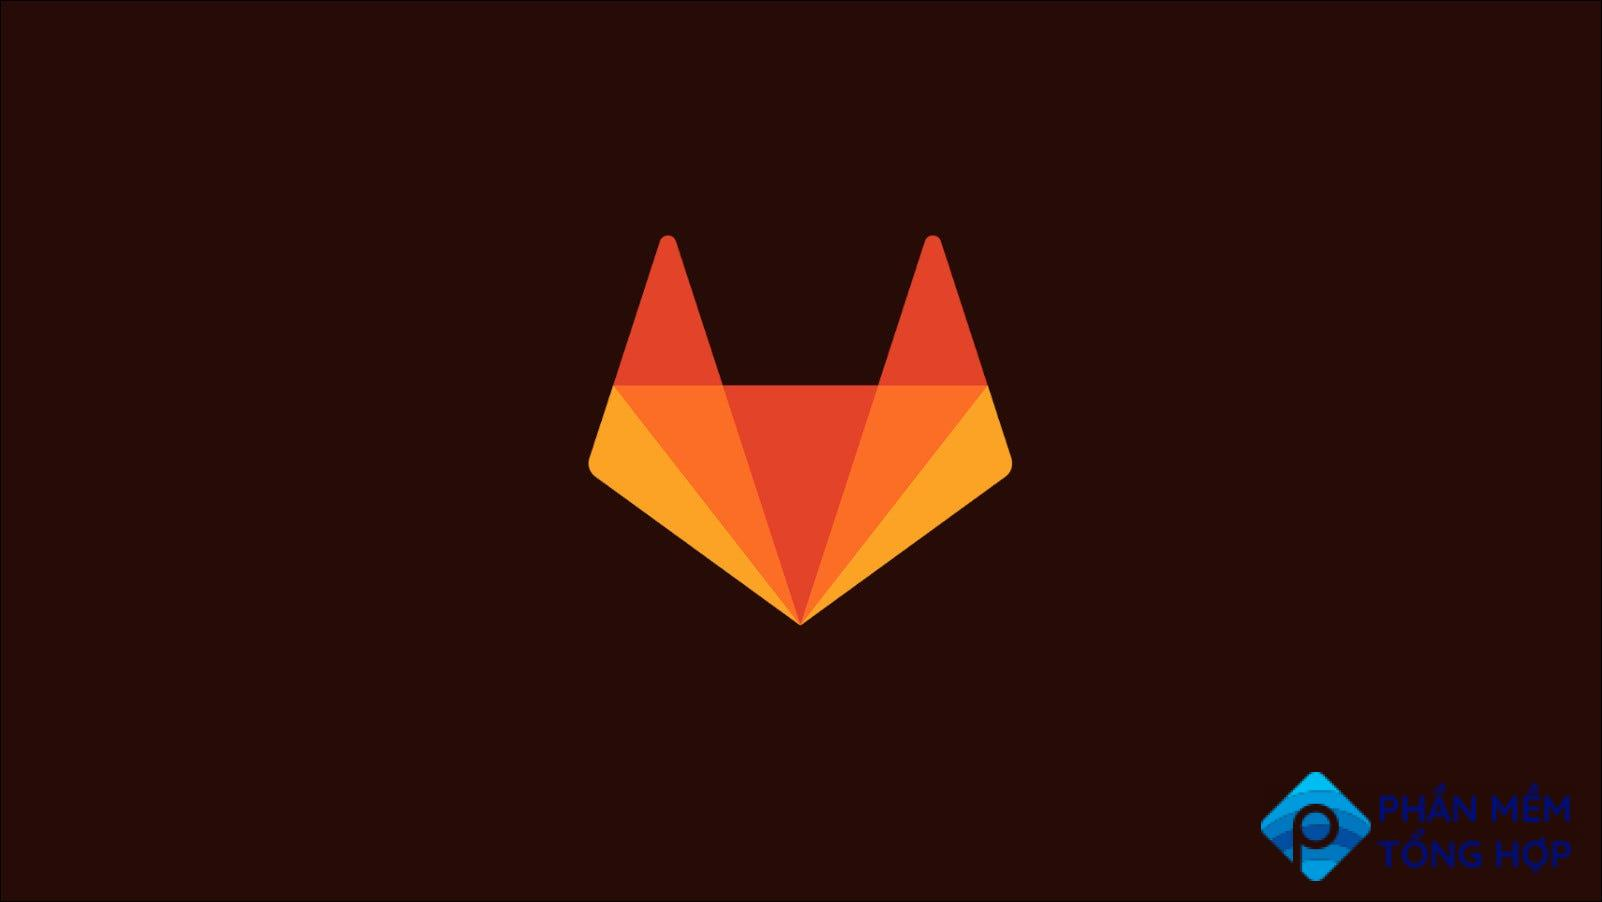 How to Use GitLab's New Helm Chart Repository